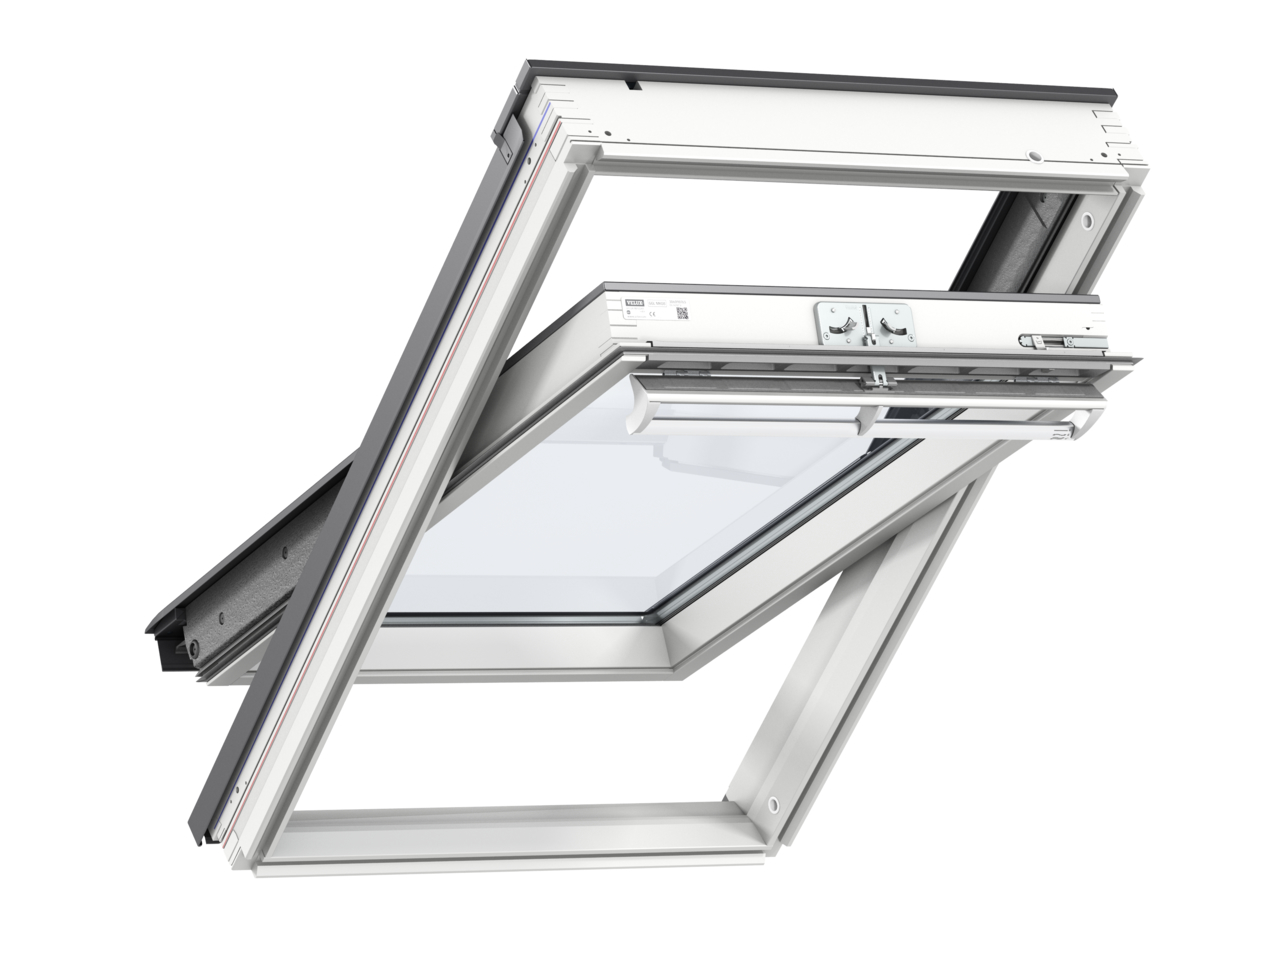 Velux GGL MK08 780 x 1400mm Centre Pivot 60Pane Roof Window - White Painted